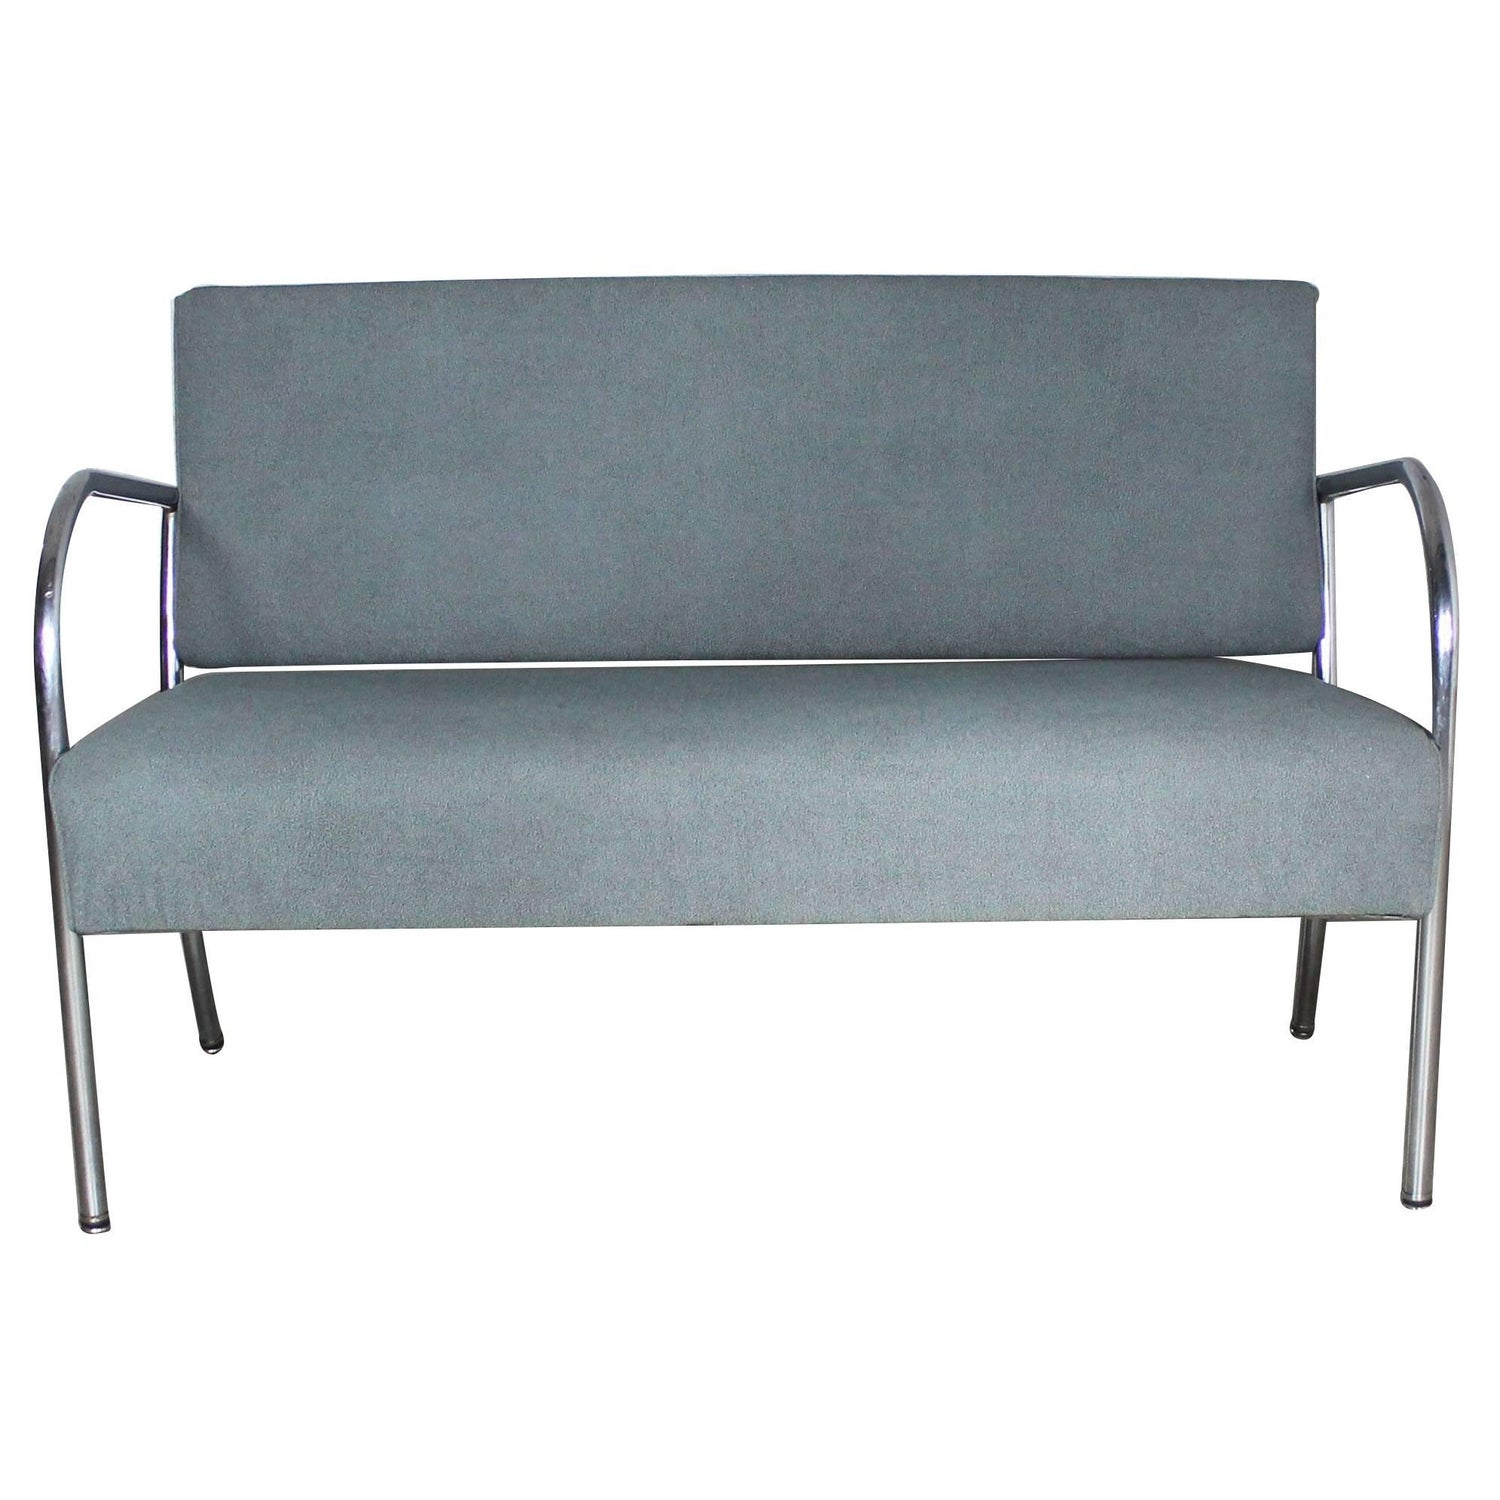 Streamlined Moderne Furniture 152 For Sale at 1stdibs